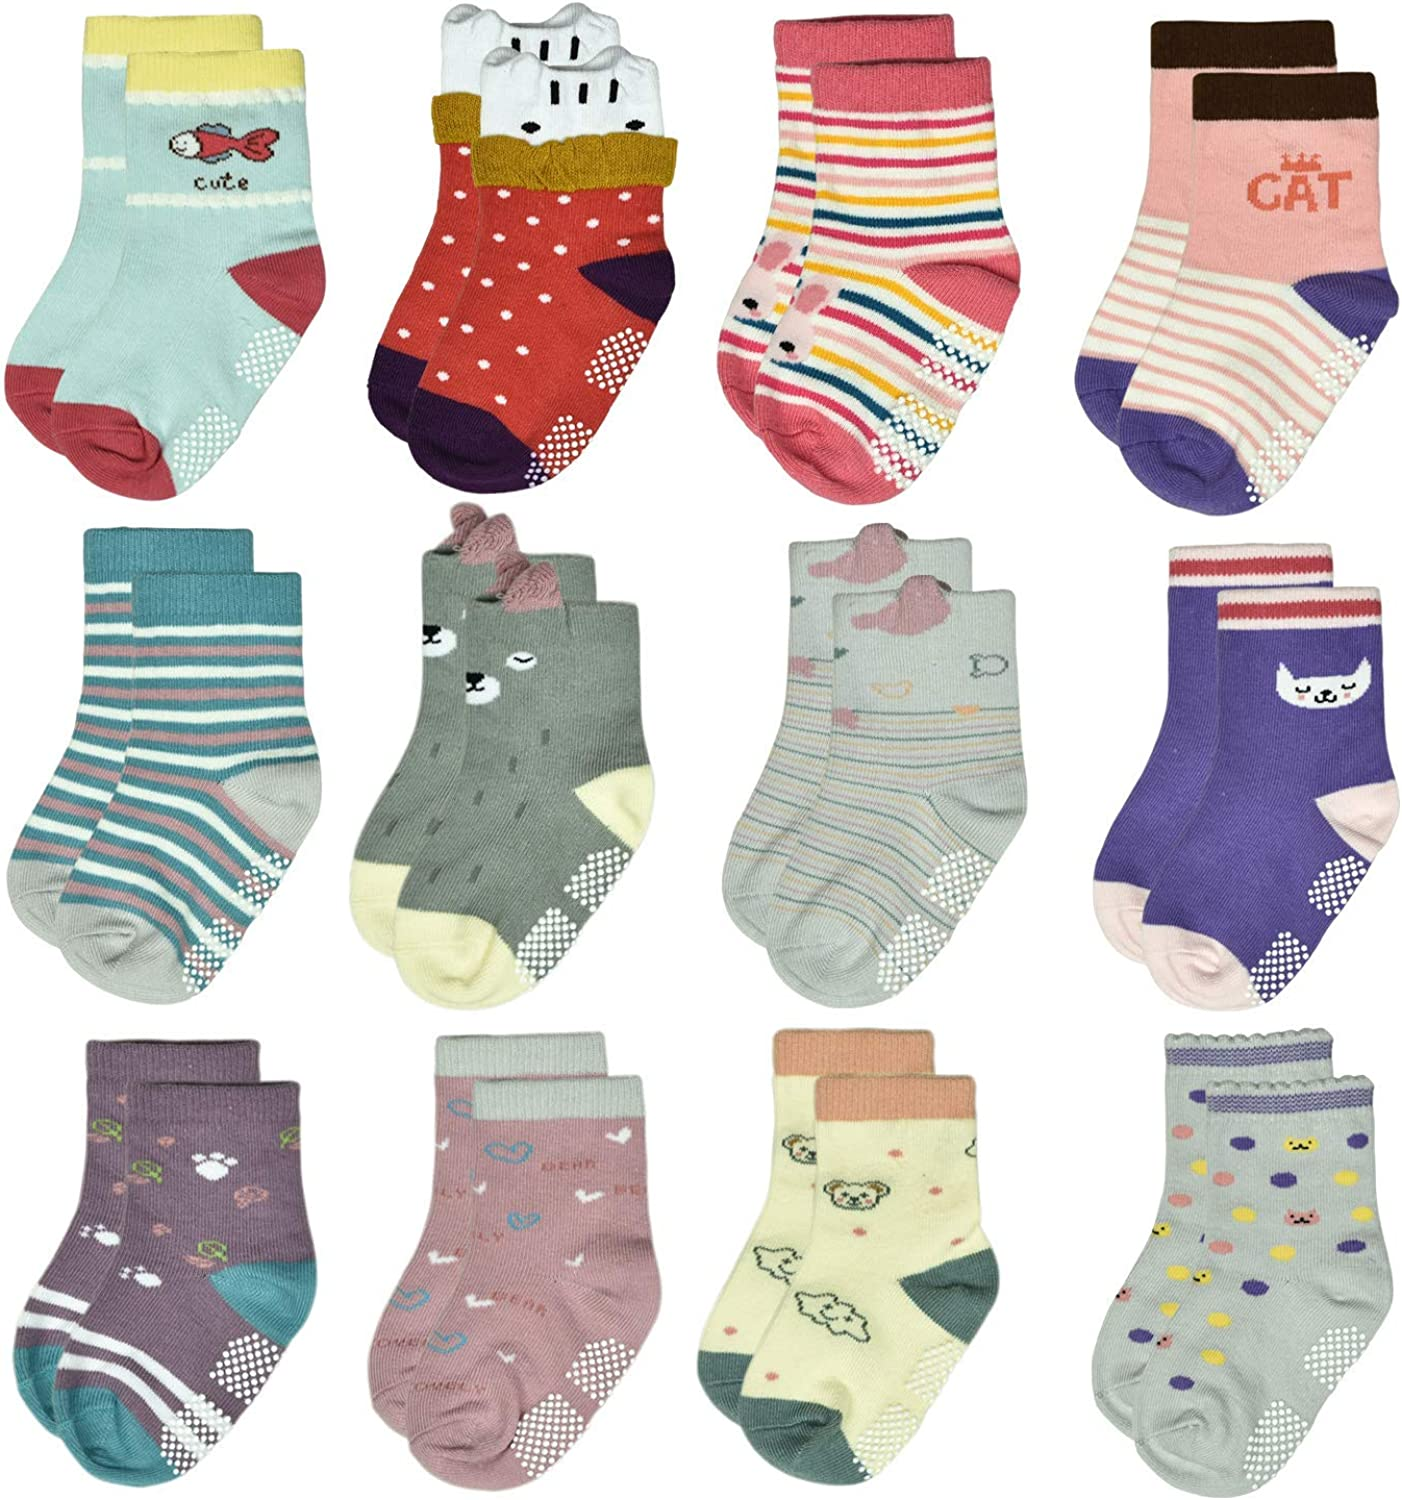 Toddlers Grip Socks with Non Slip/Anti Skid Soles for Baby Infants Kids Girls Boys 0-3 Years Old Child(6/12Pairs)